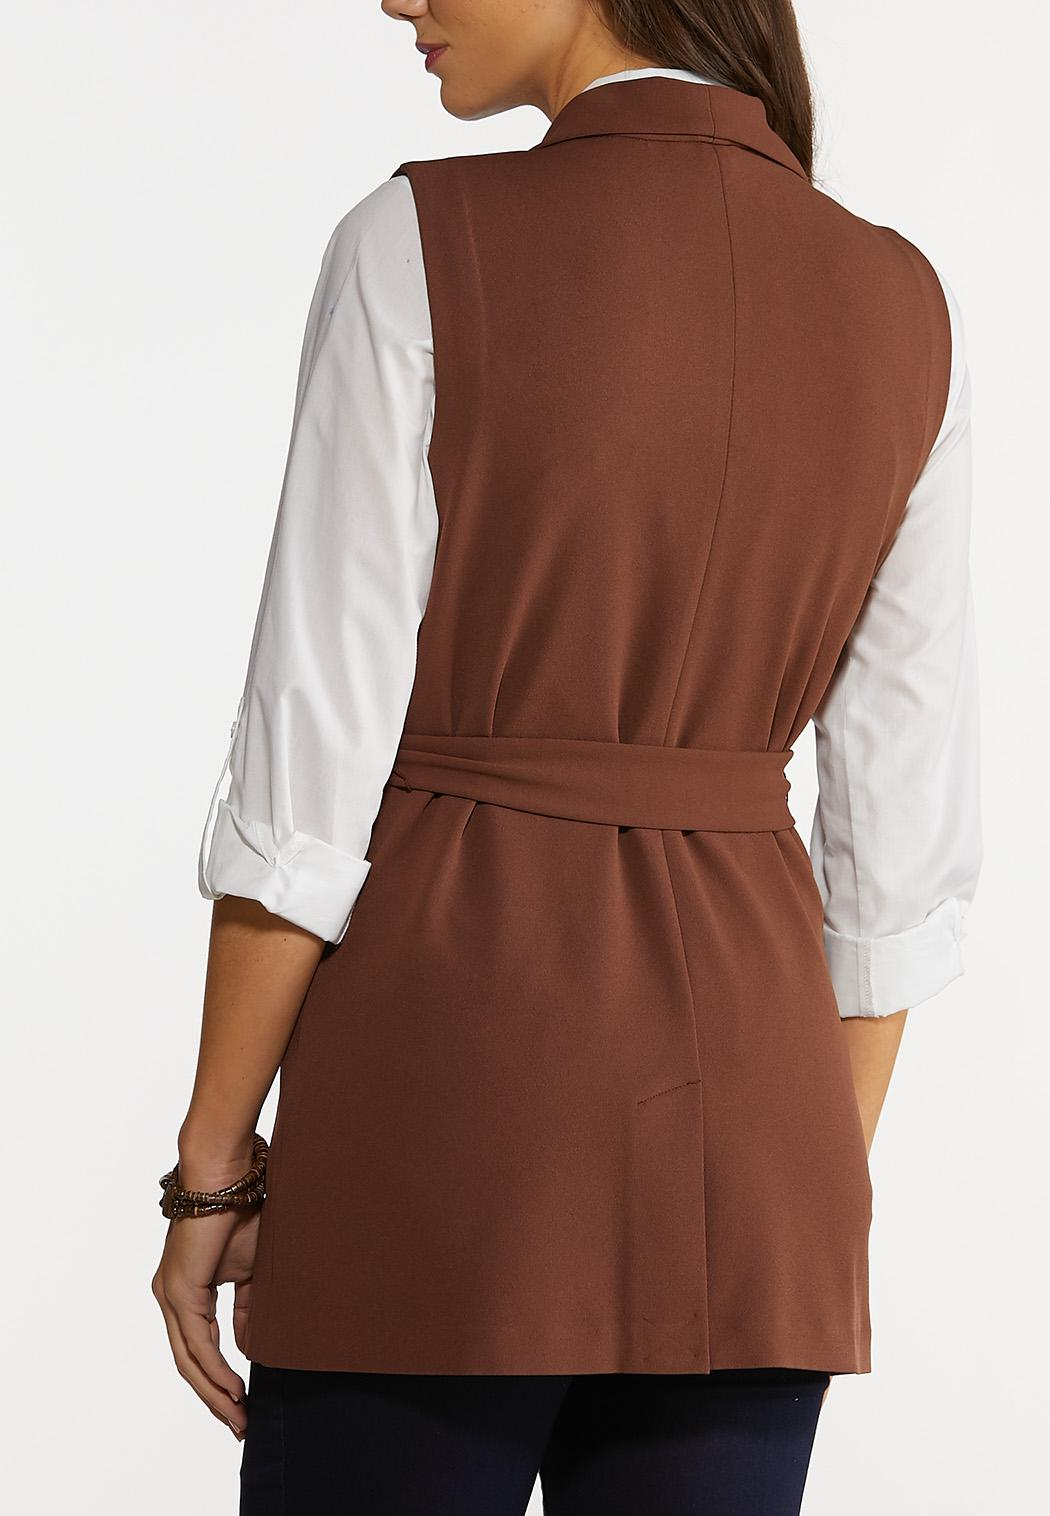 Brown Belted Vest (Item #44159860)